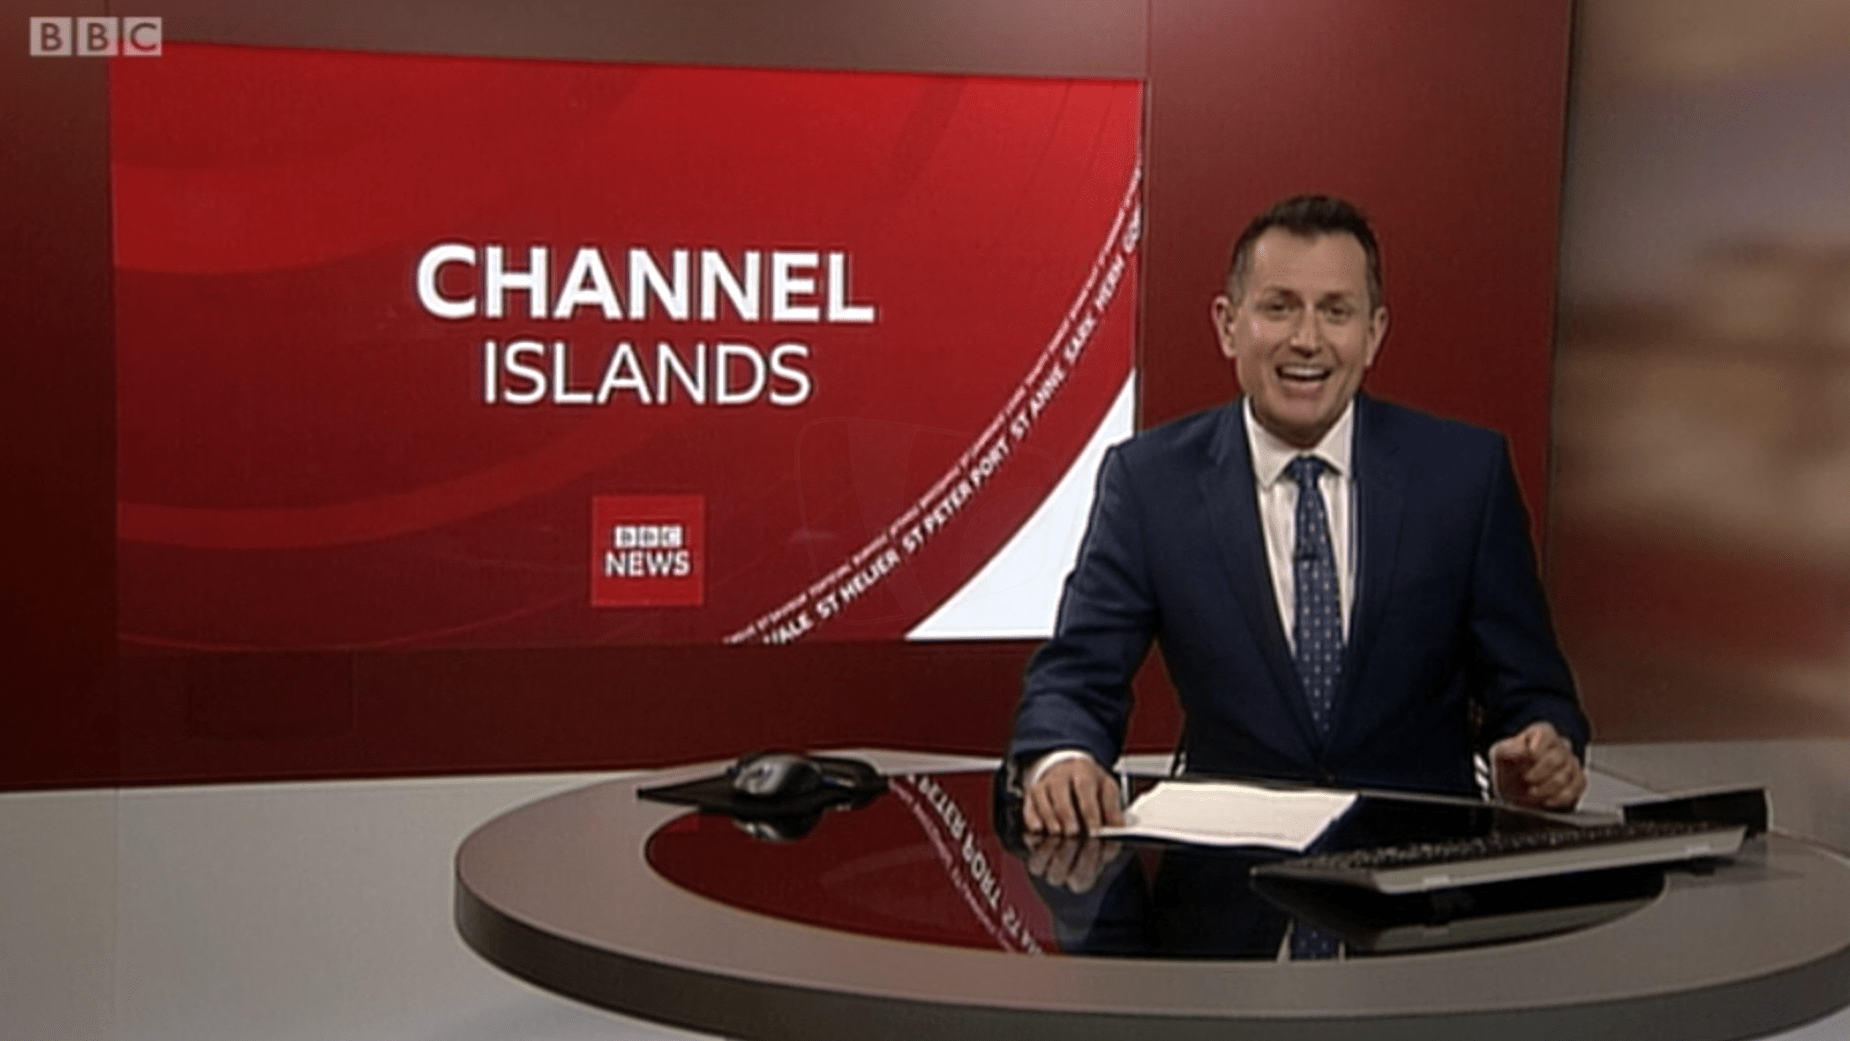 PICTURED: BBC Channel Islands studio presentation. Presenter: TBC.